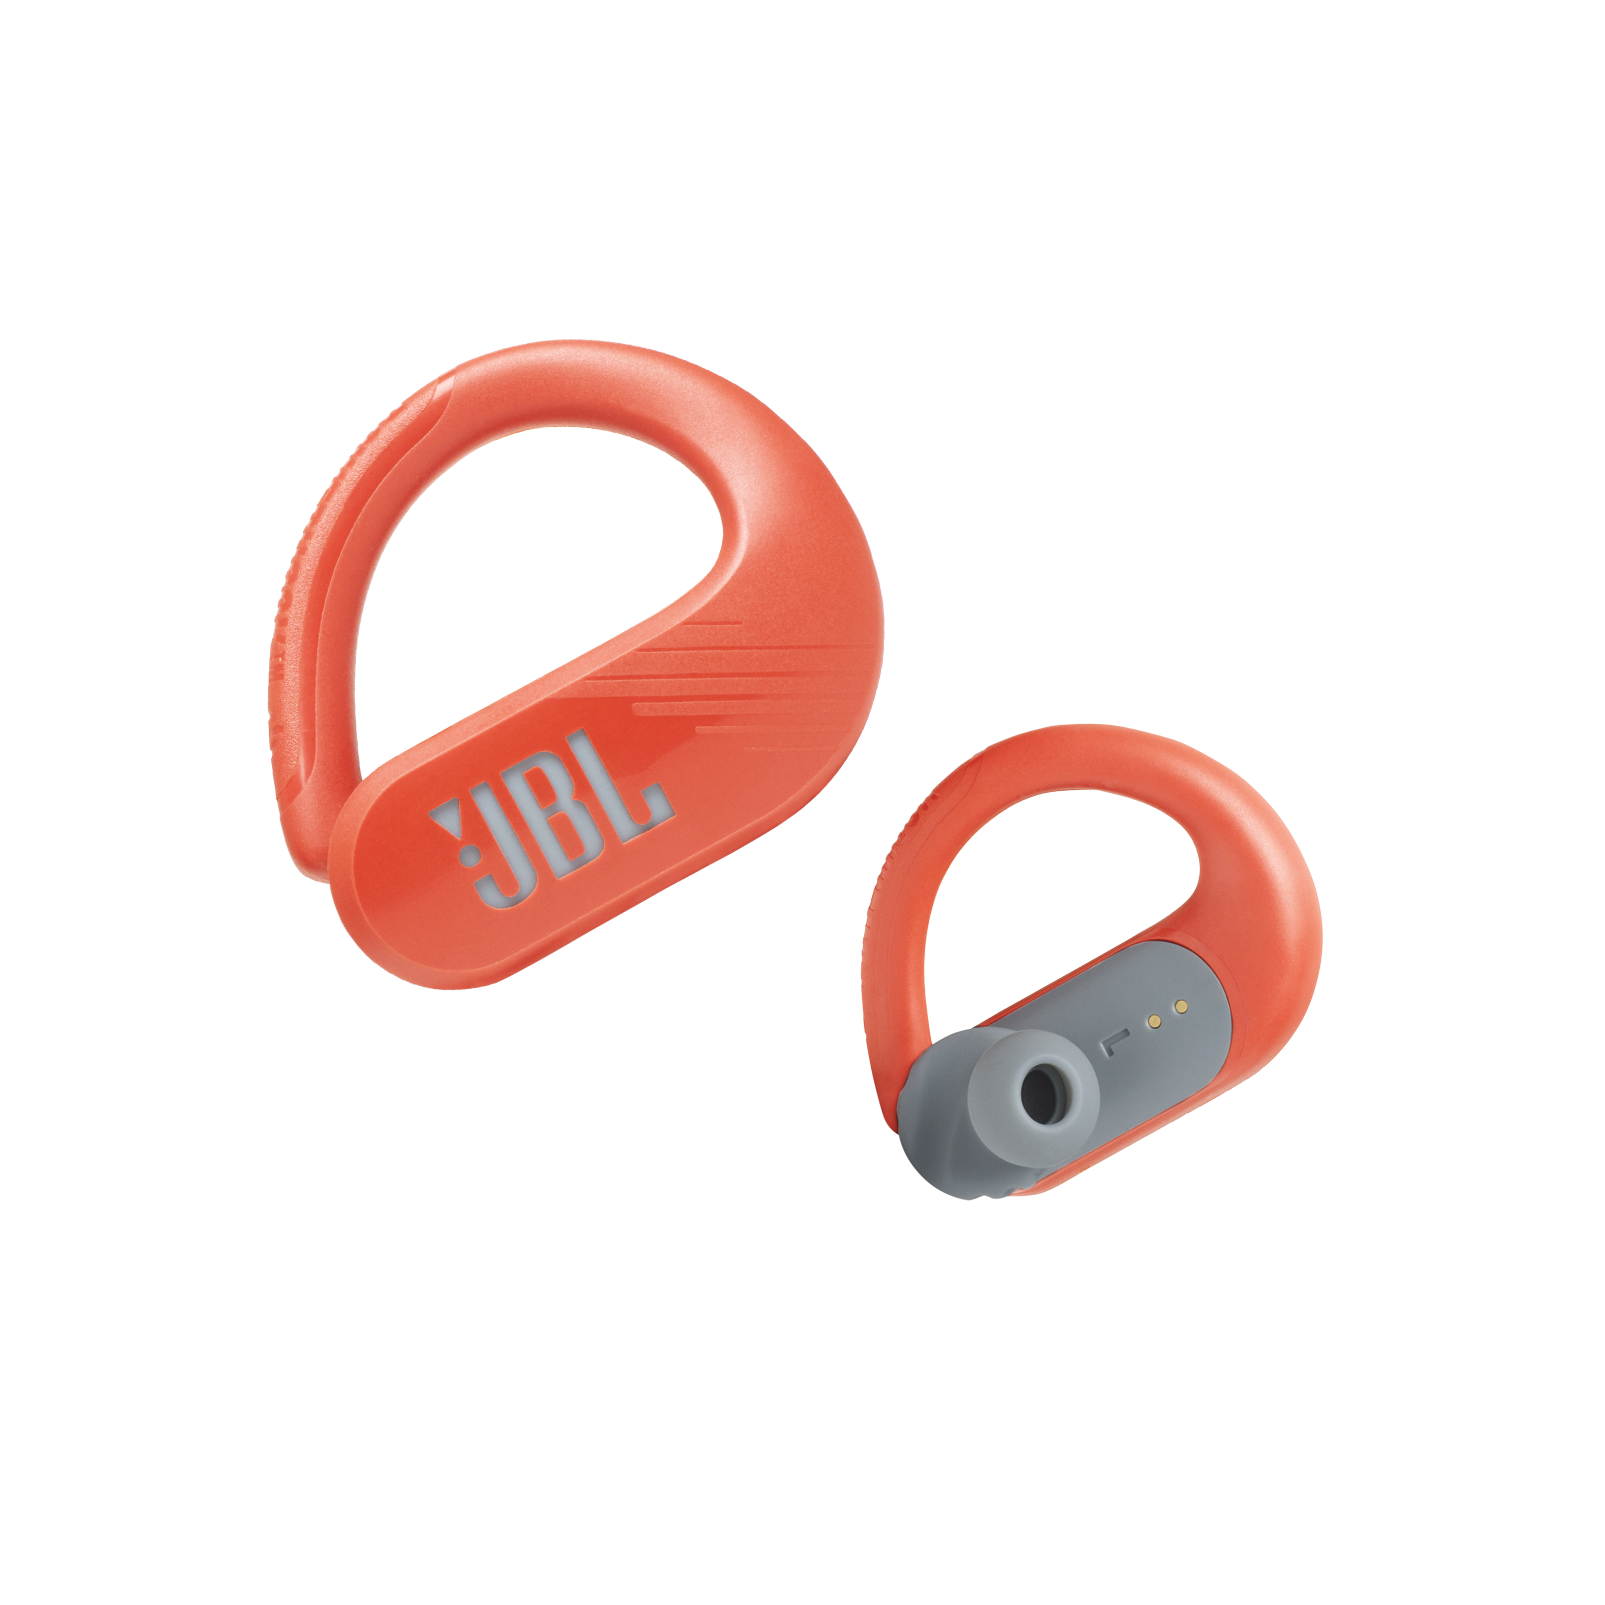 JBL Endurance Peak II - Coral Orange - Waterproof True Wireless In-Ear Sport Headphones - Detailshot 7